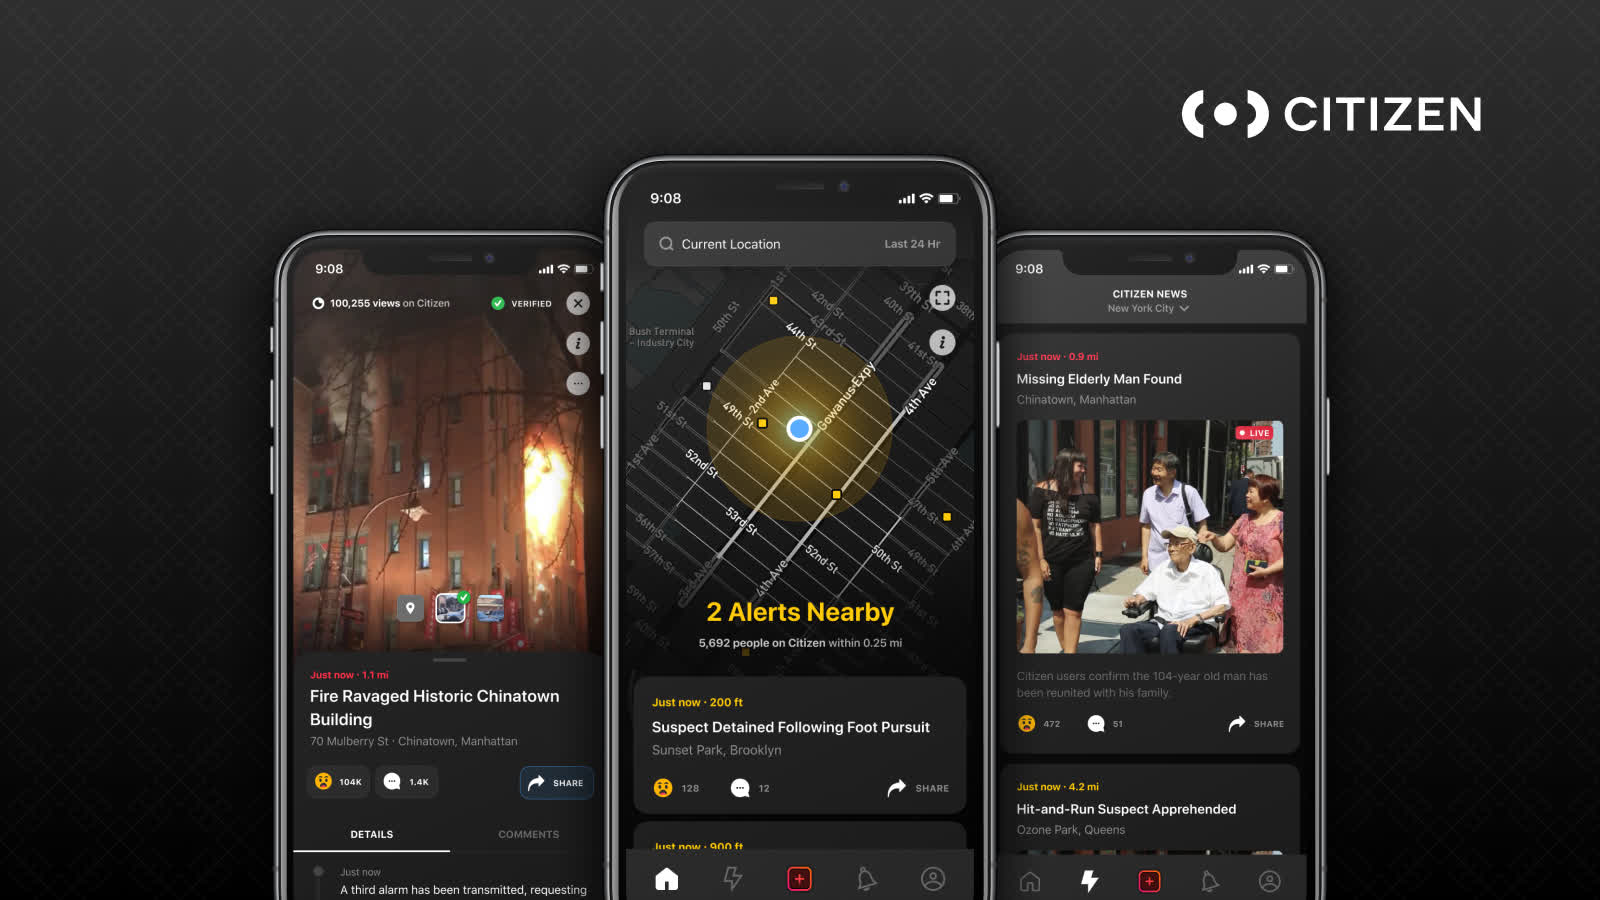 Citizen app pays $200 to $250 a day to track and livestream crimes and emergencies